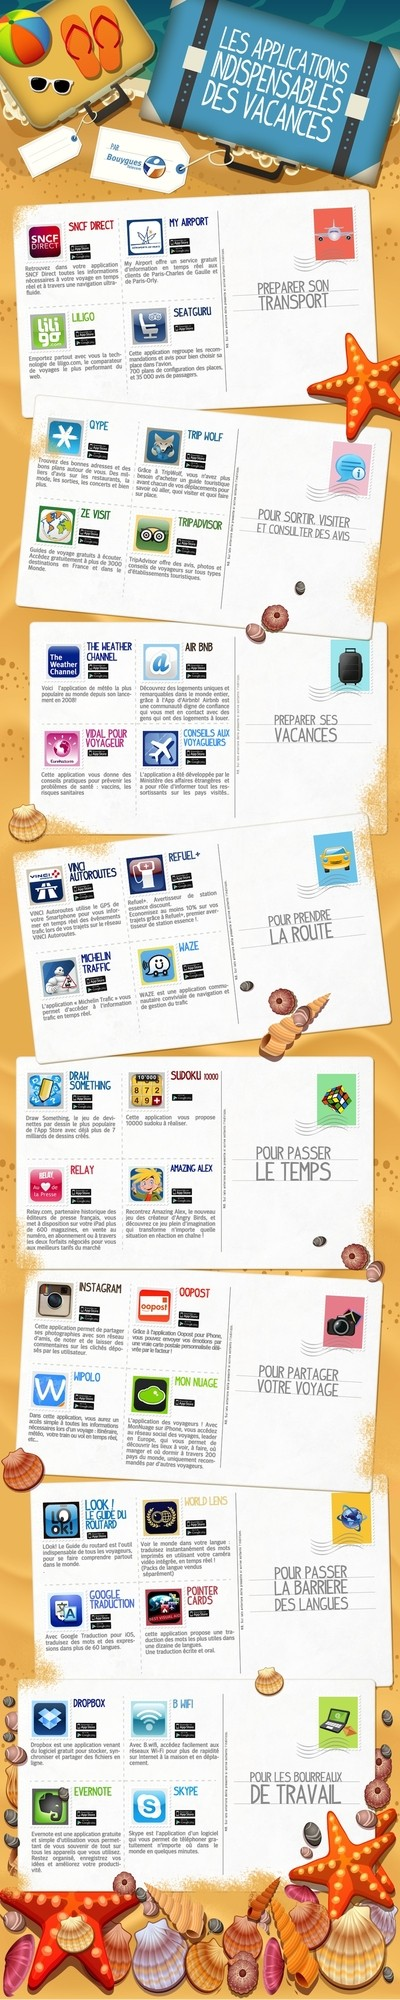 infographie applications indispensables des vacances bouygues telecom